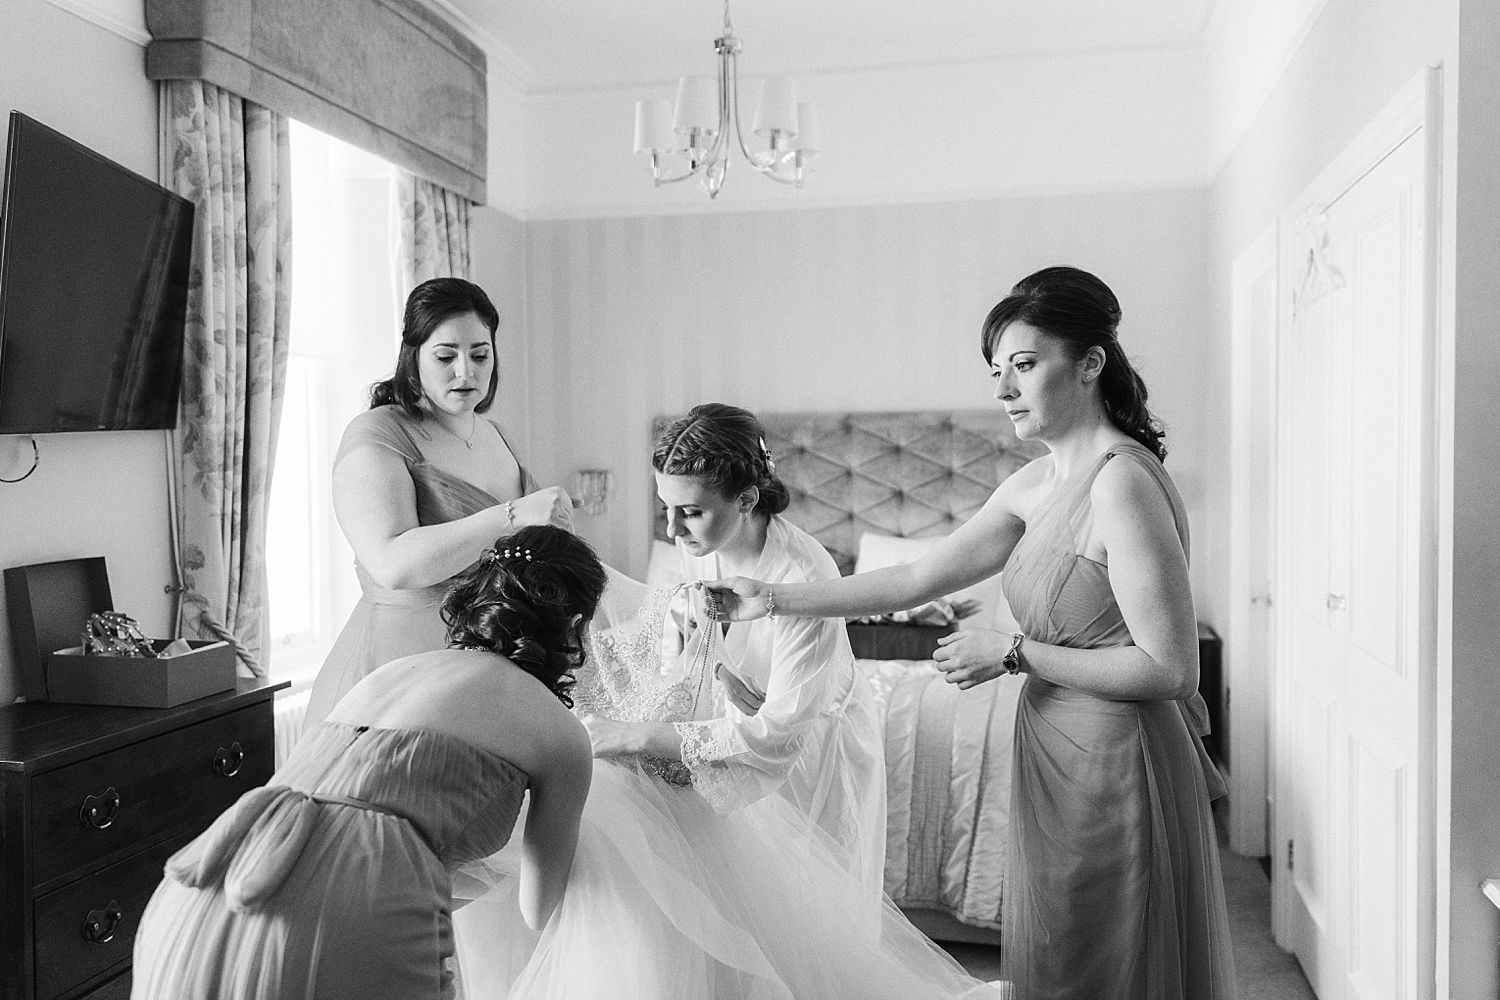 Bridesmaids preparing wedding dress for bride at Laura Ashley Belsfield Hotel, Bowness on Windermere